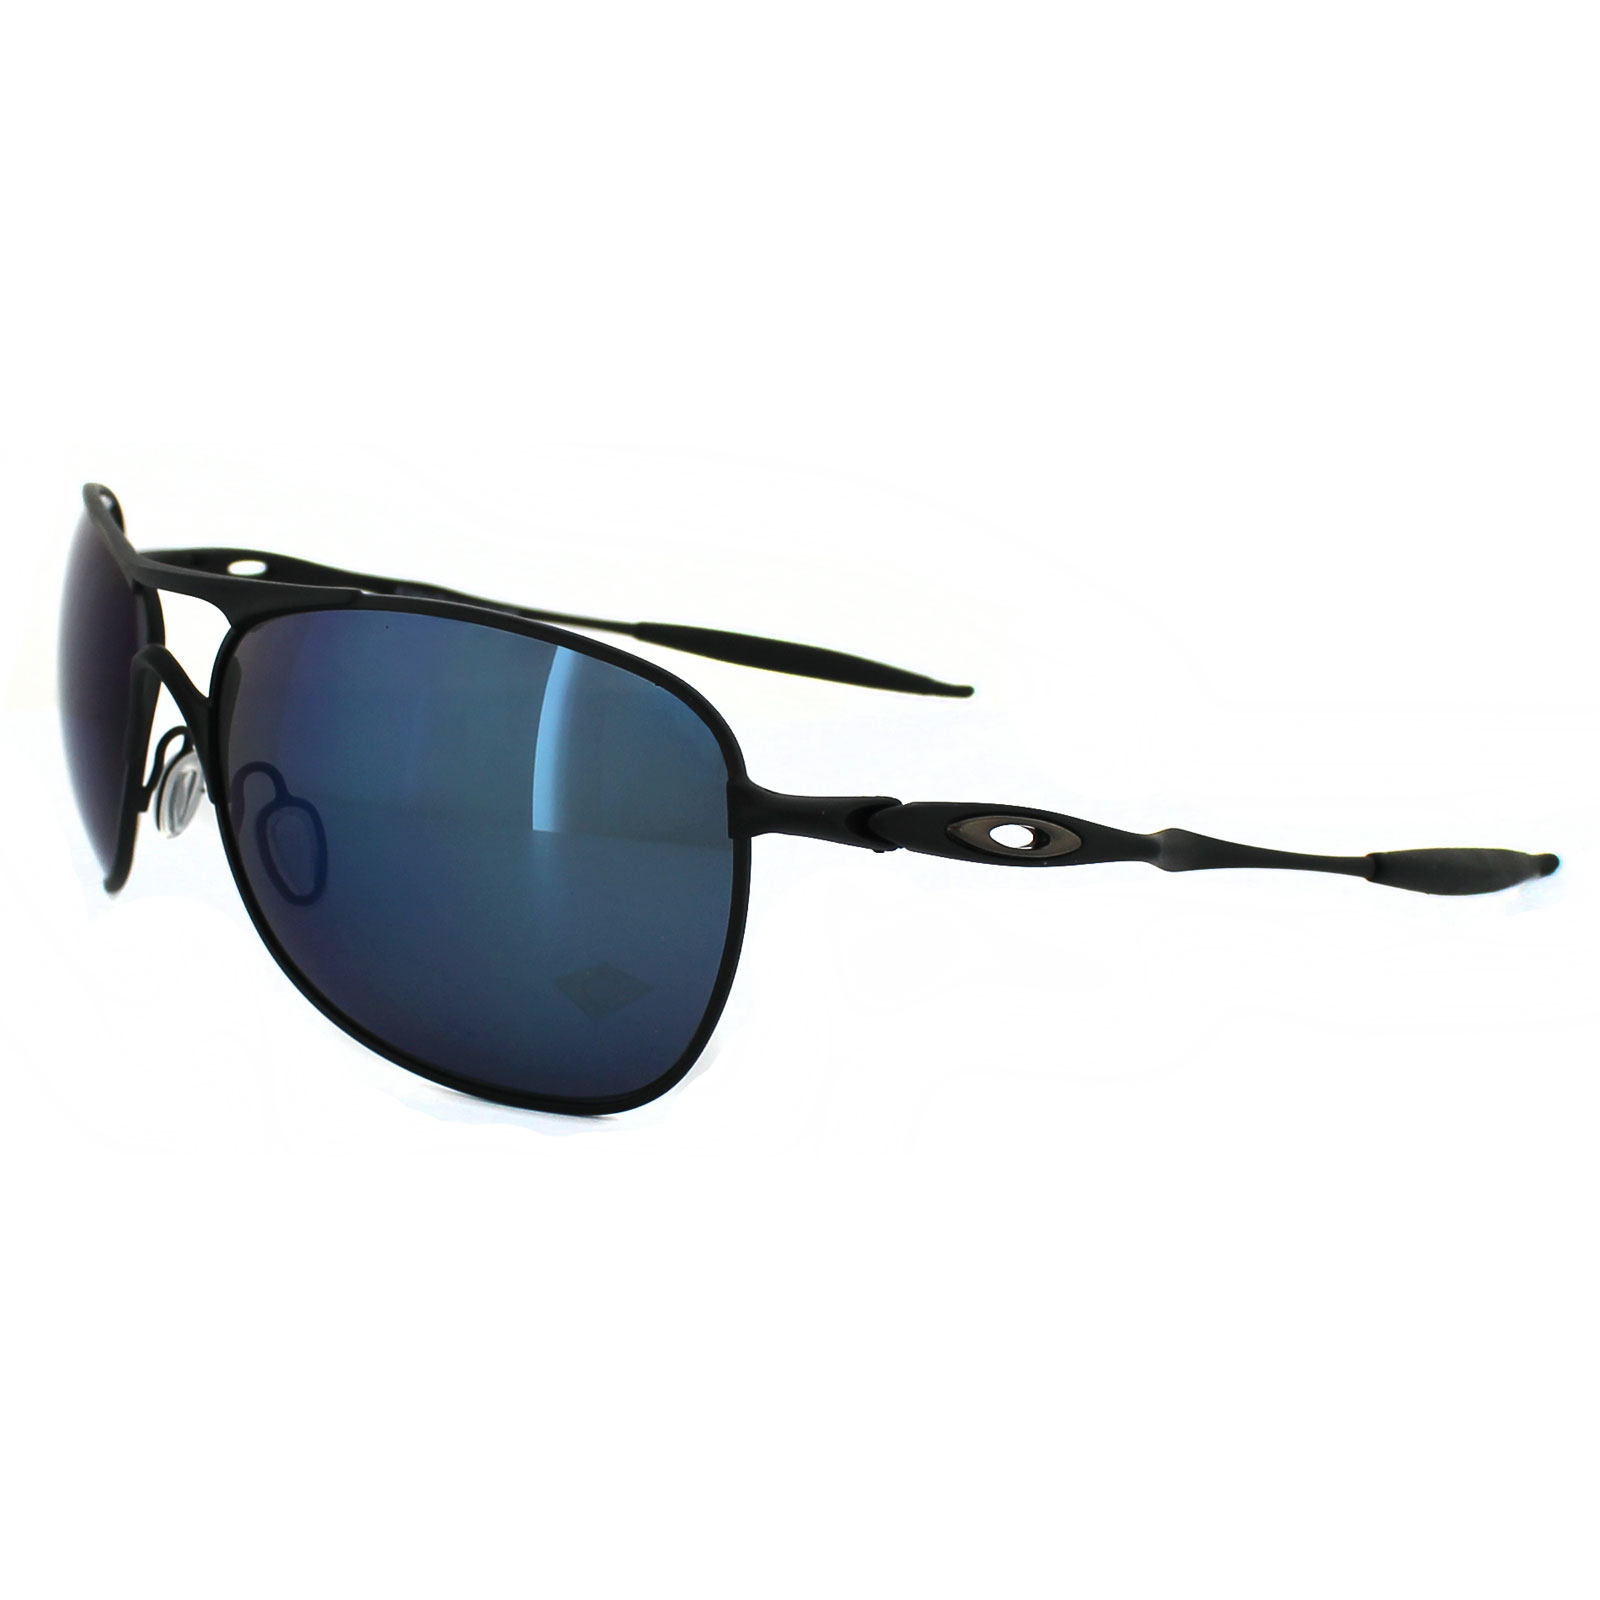 Top Oakley coupon: Up to 70% Off Apparel and Accessories. Get 15 Oakley coupons and discounts for December